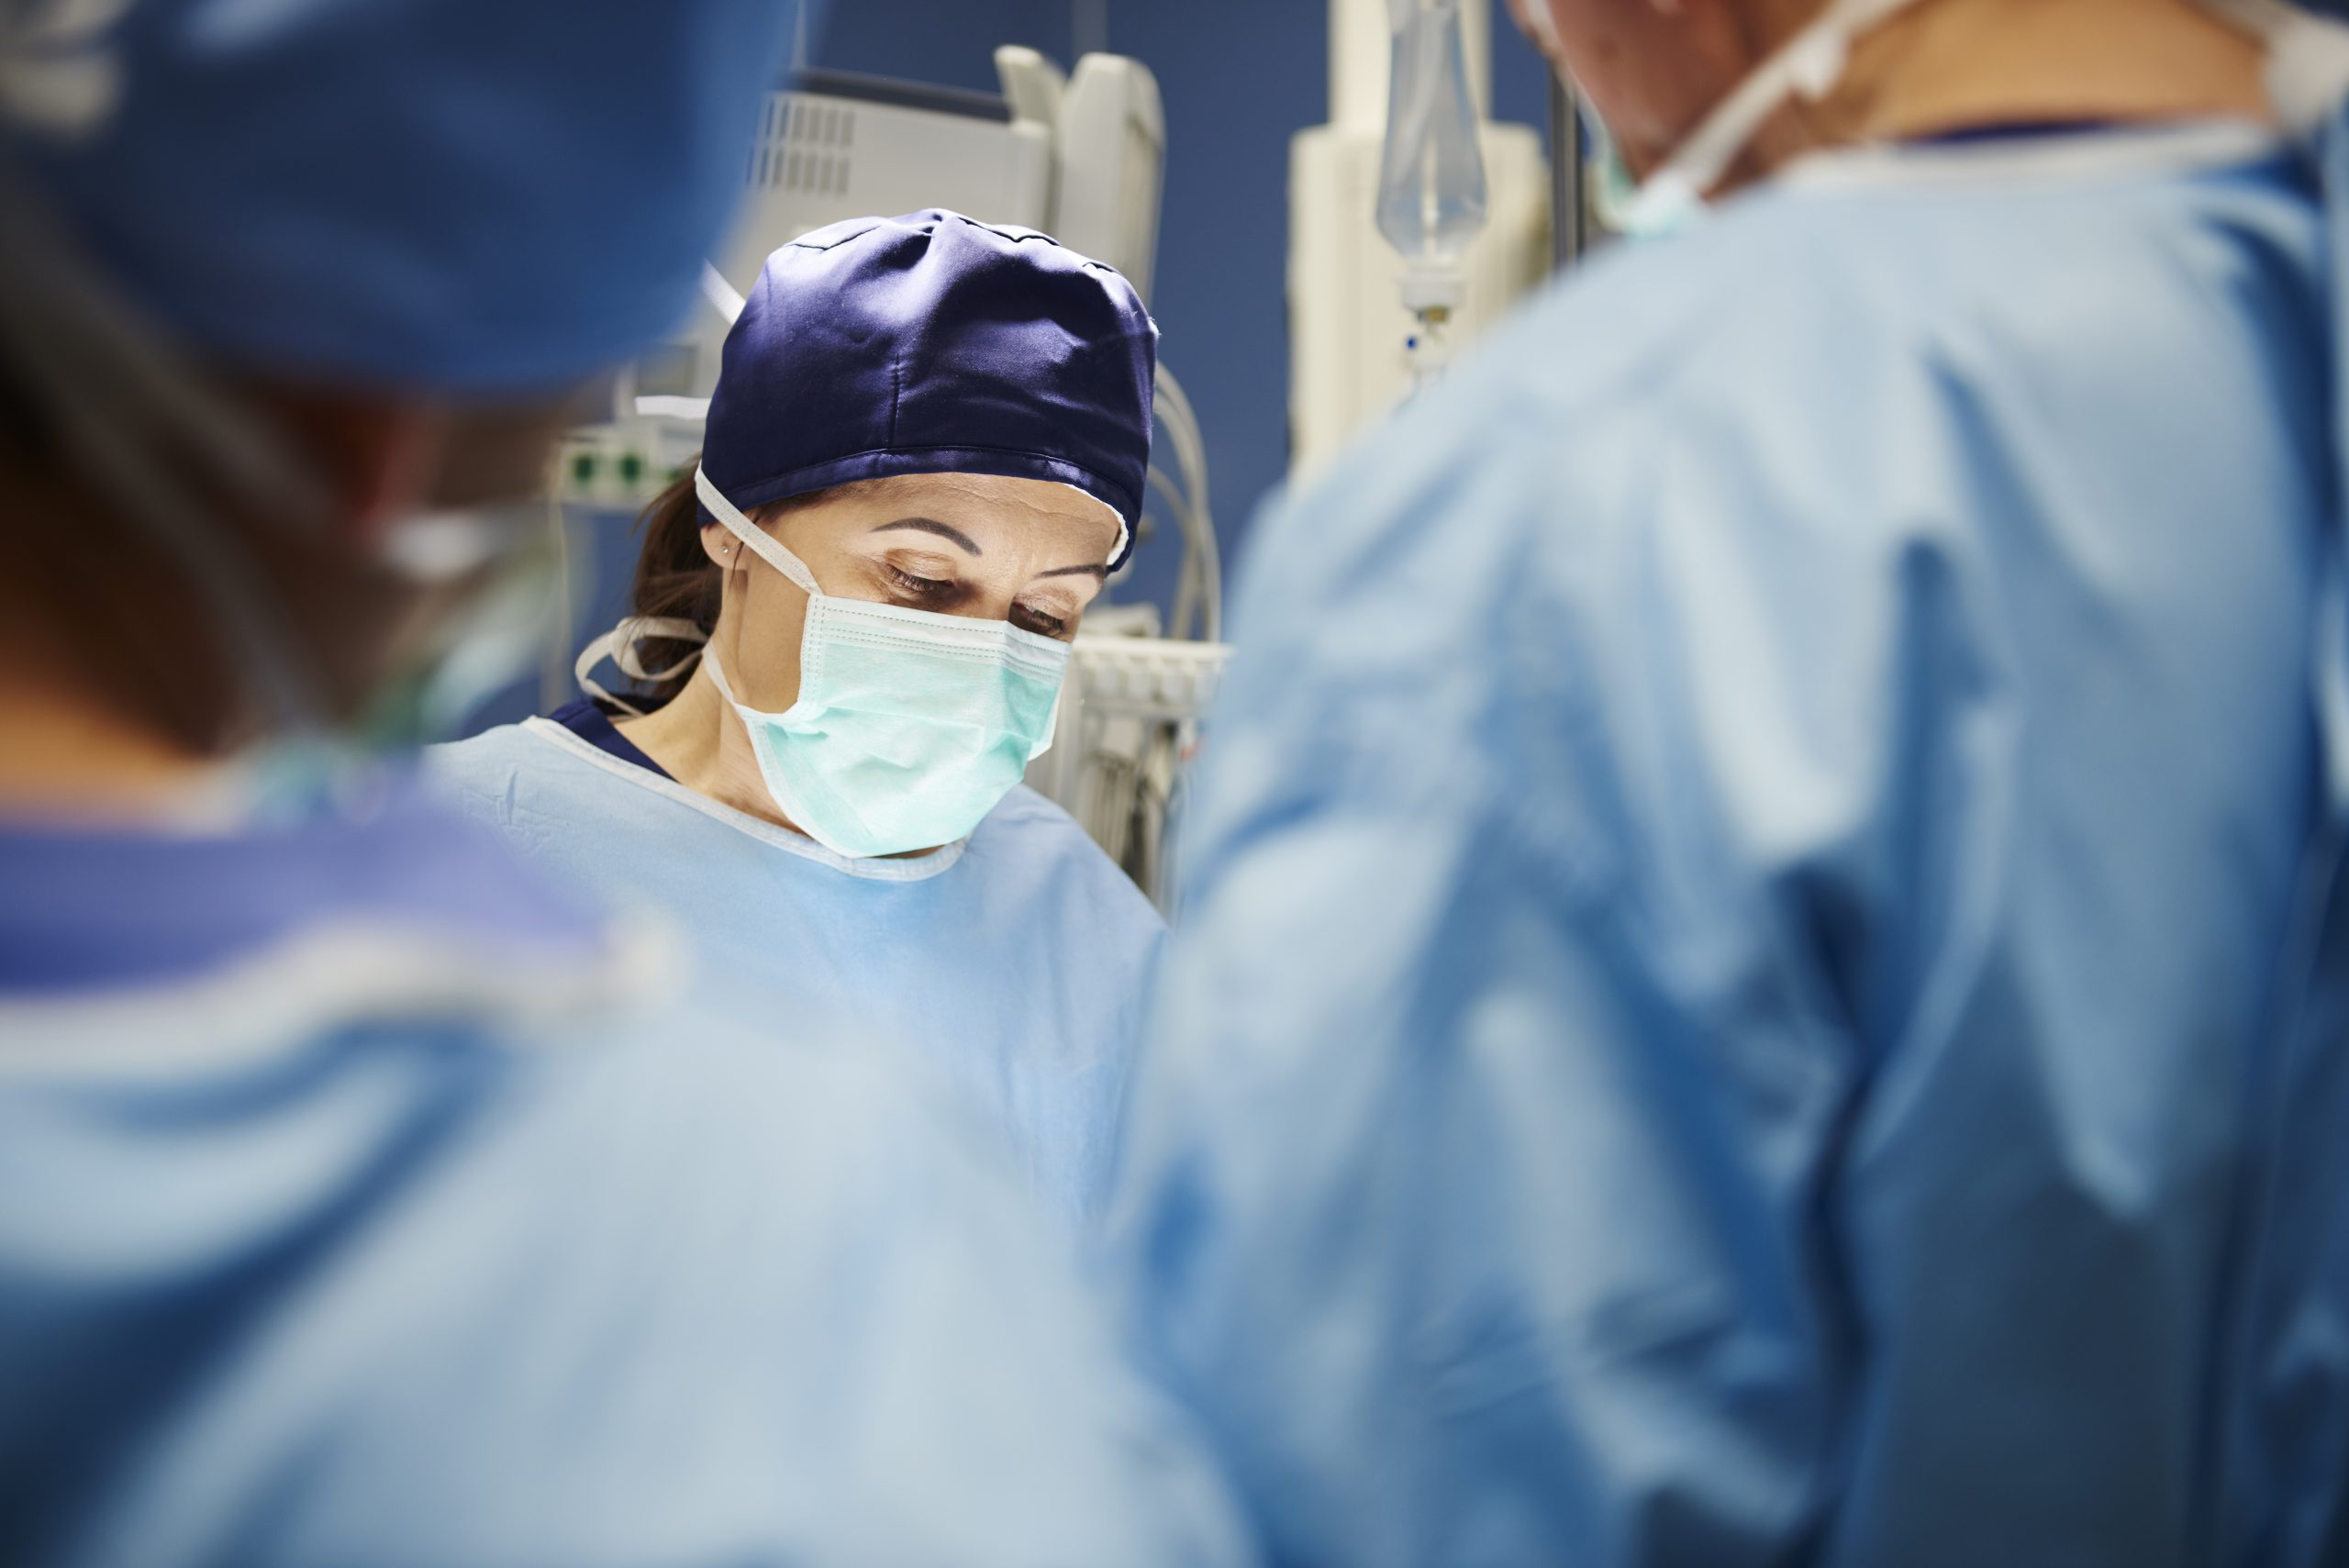 Mature female surgeon during an operation